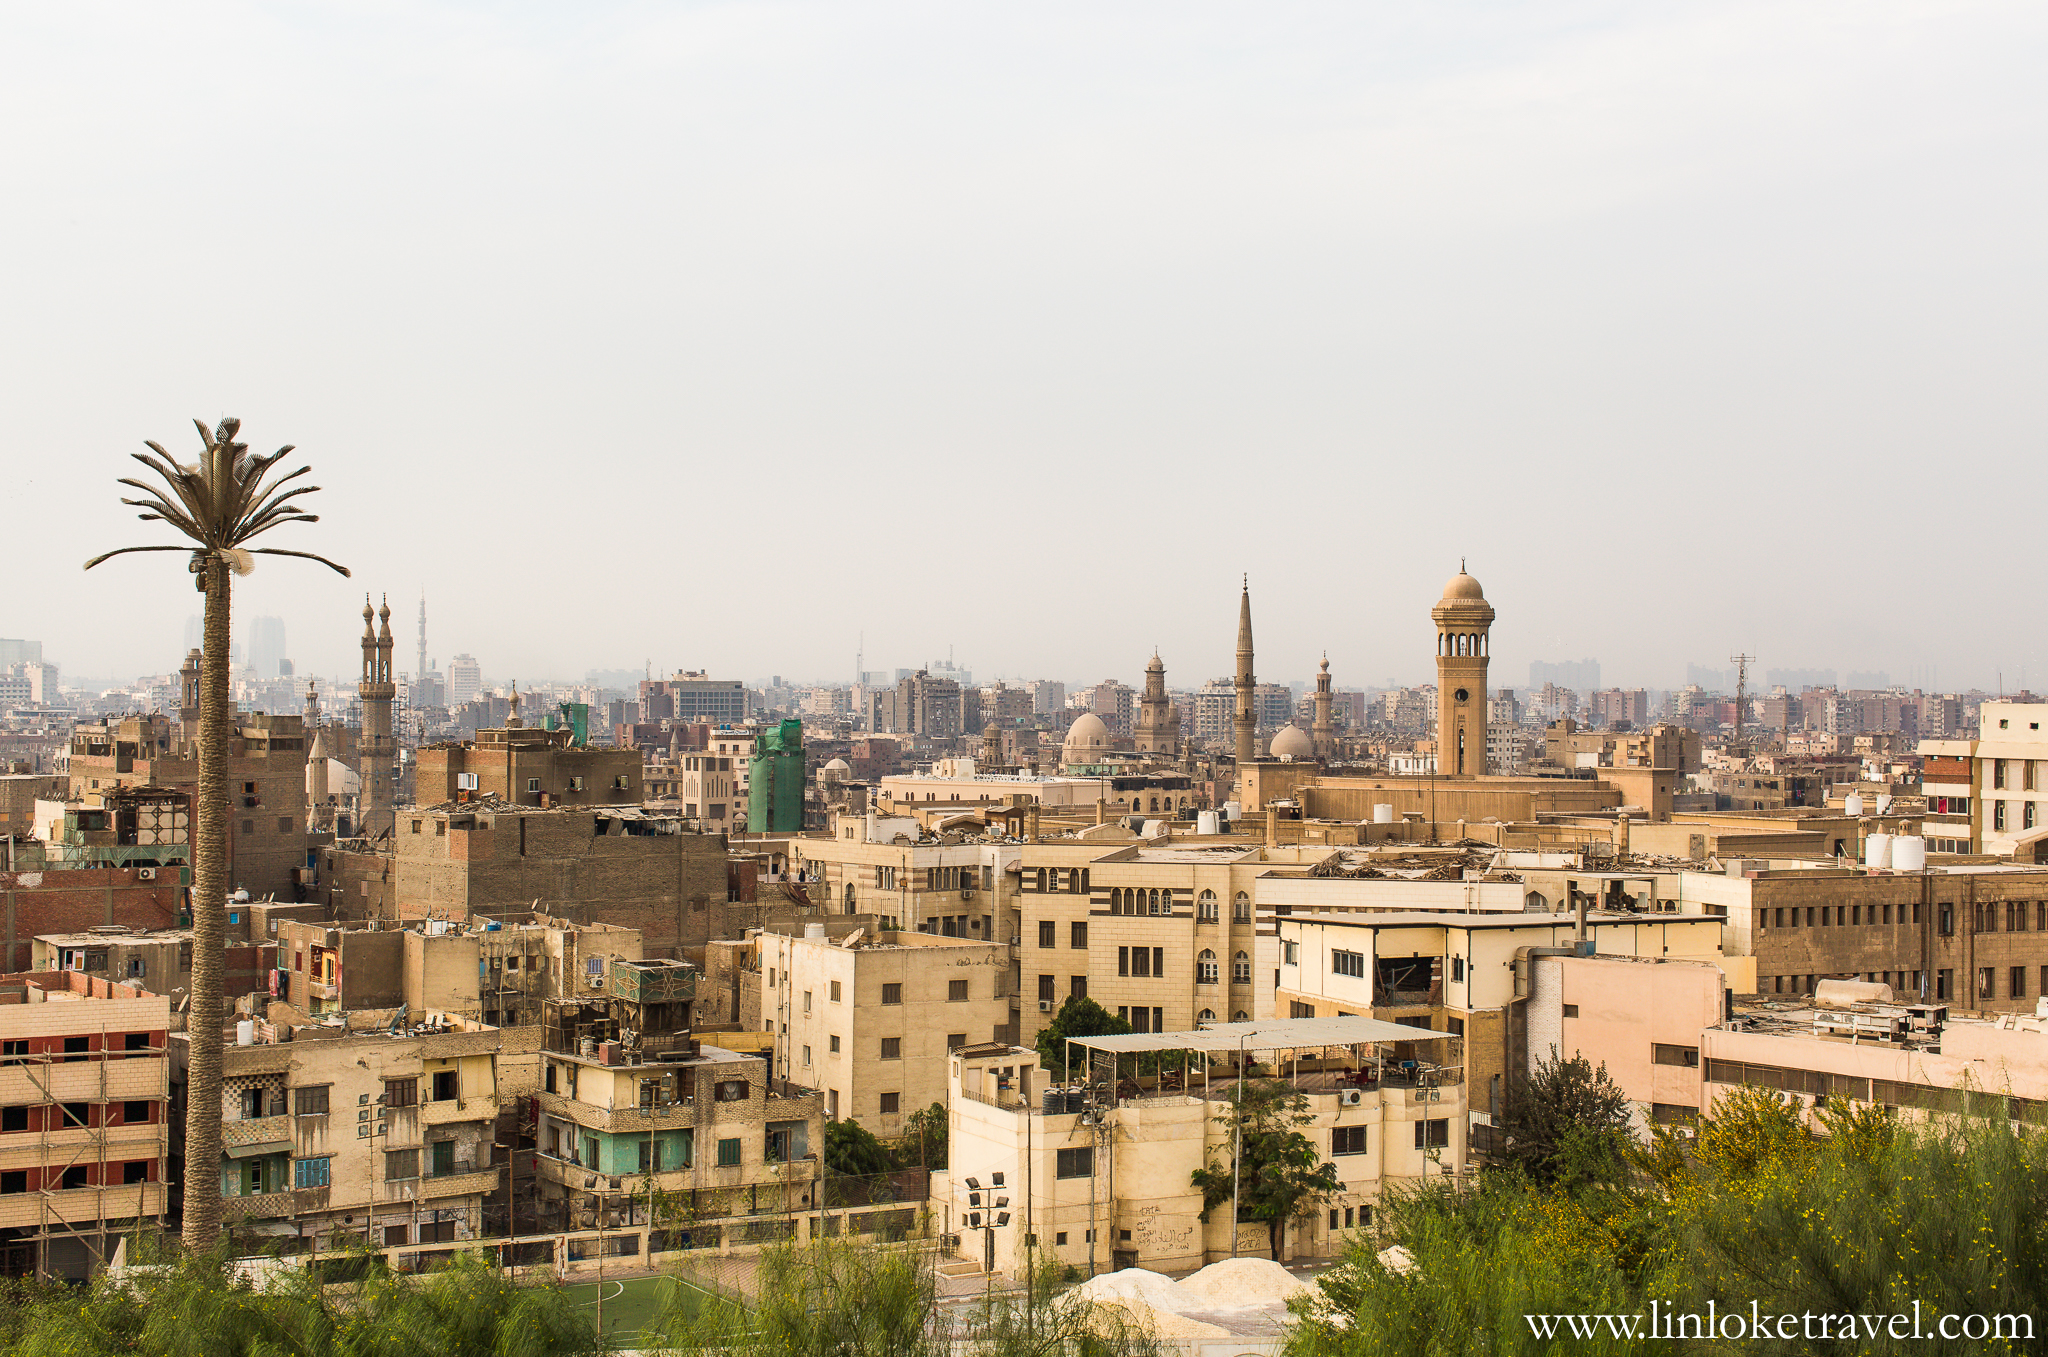 View from the other side of Al-Azhar Park.